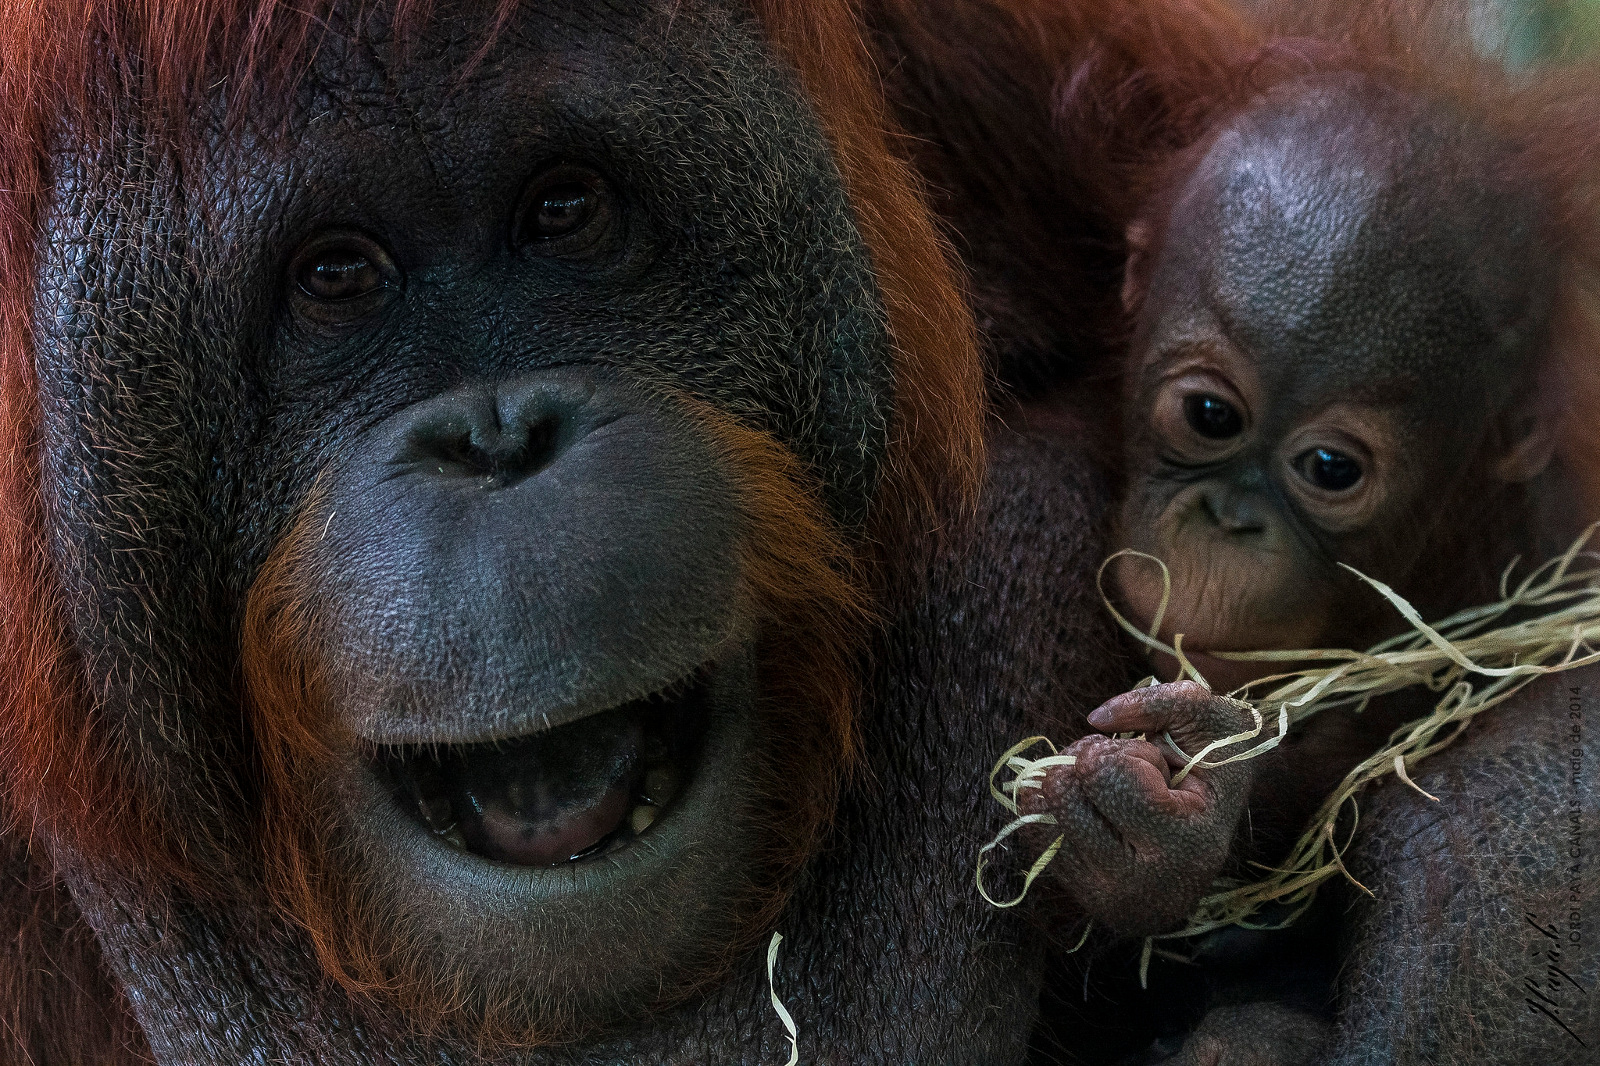 Over 168,000 Acres of Rainforest Converted to Sanctuary to Protect Orangutans and Other Animals